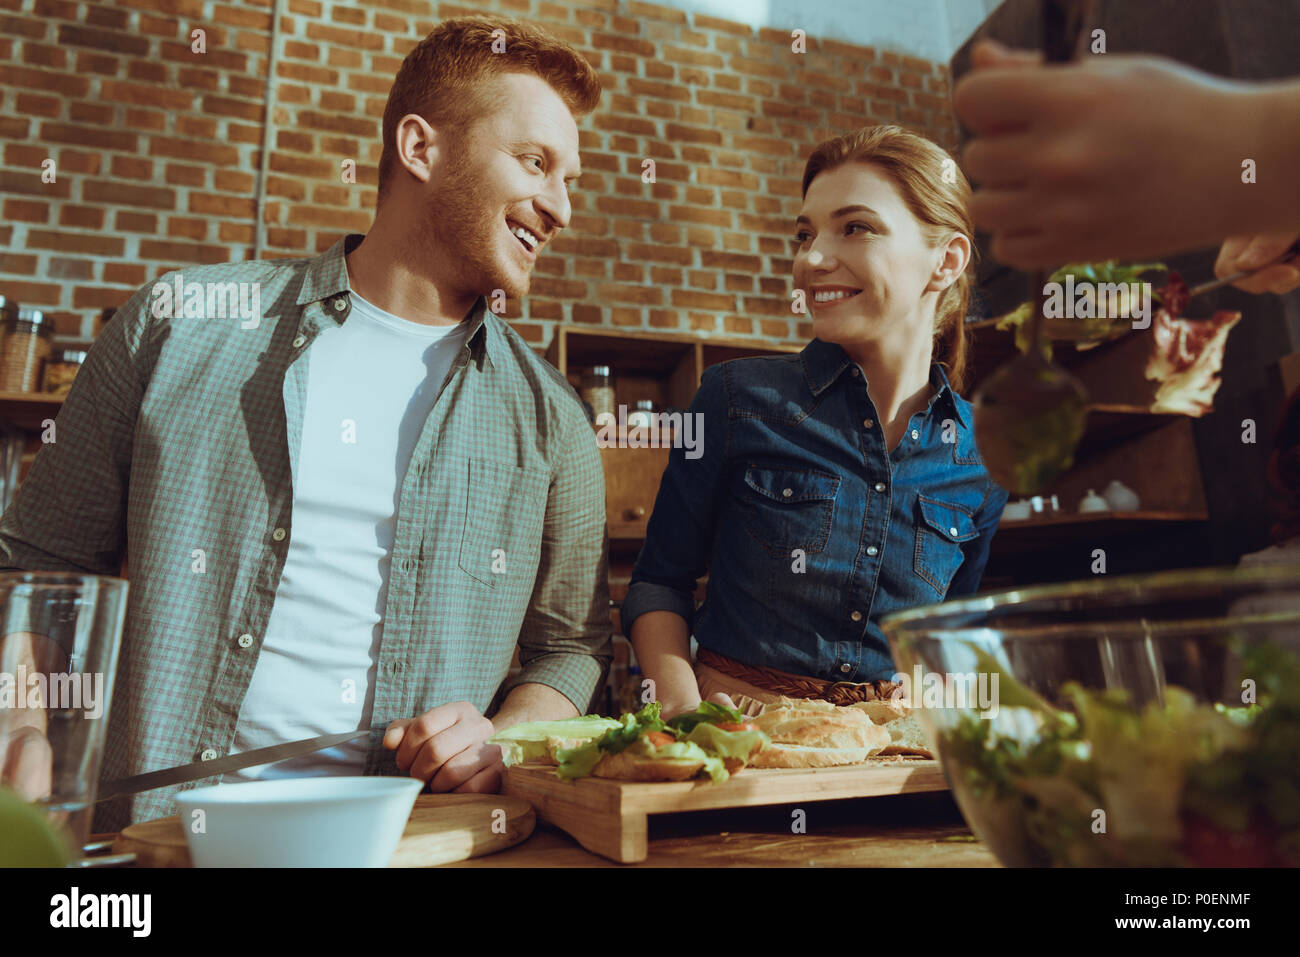 low angle view of smiling couple looking at each other while cooking dinner together at home - Stock Image